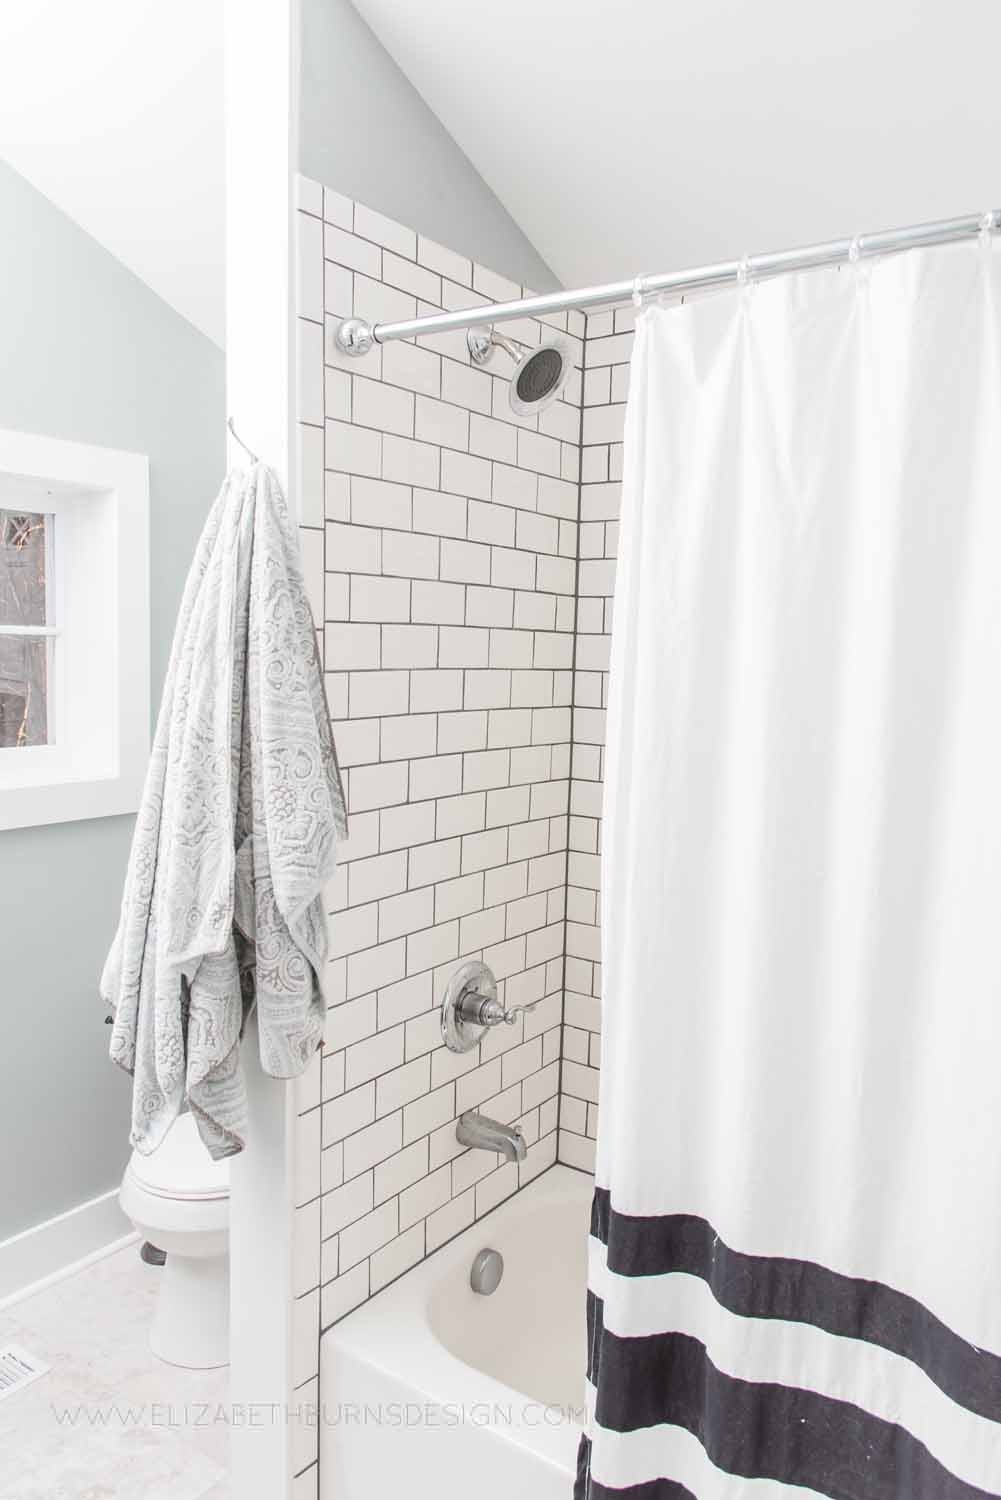 Elizabeth Burns Design Raleigh Interior Designer  Farmhouse Fixer Upper Cottage Renovation, Sherwin Williams Magnetic Gray SW 7058 Small Master Bathroom (1).jpg